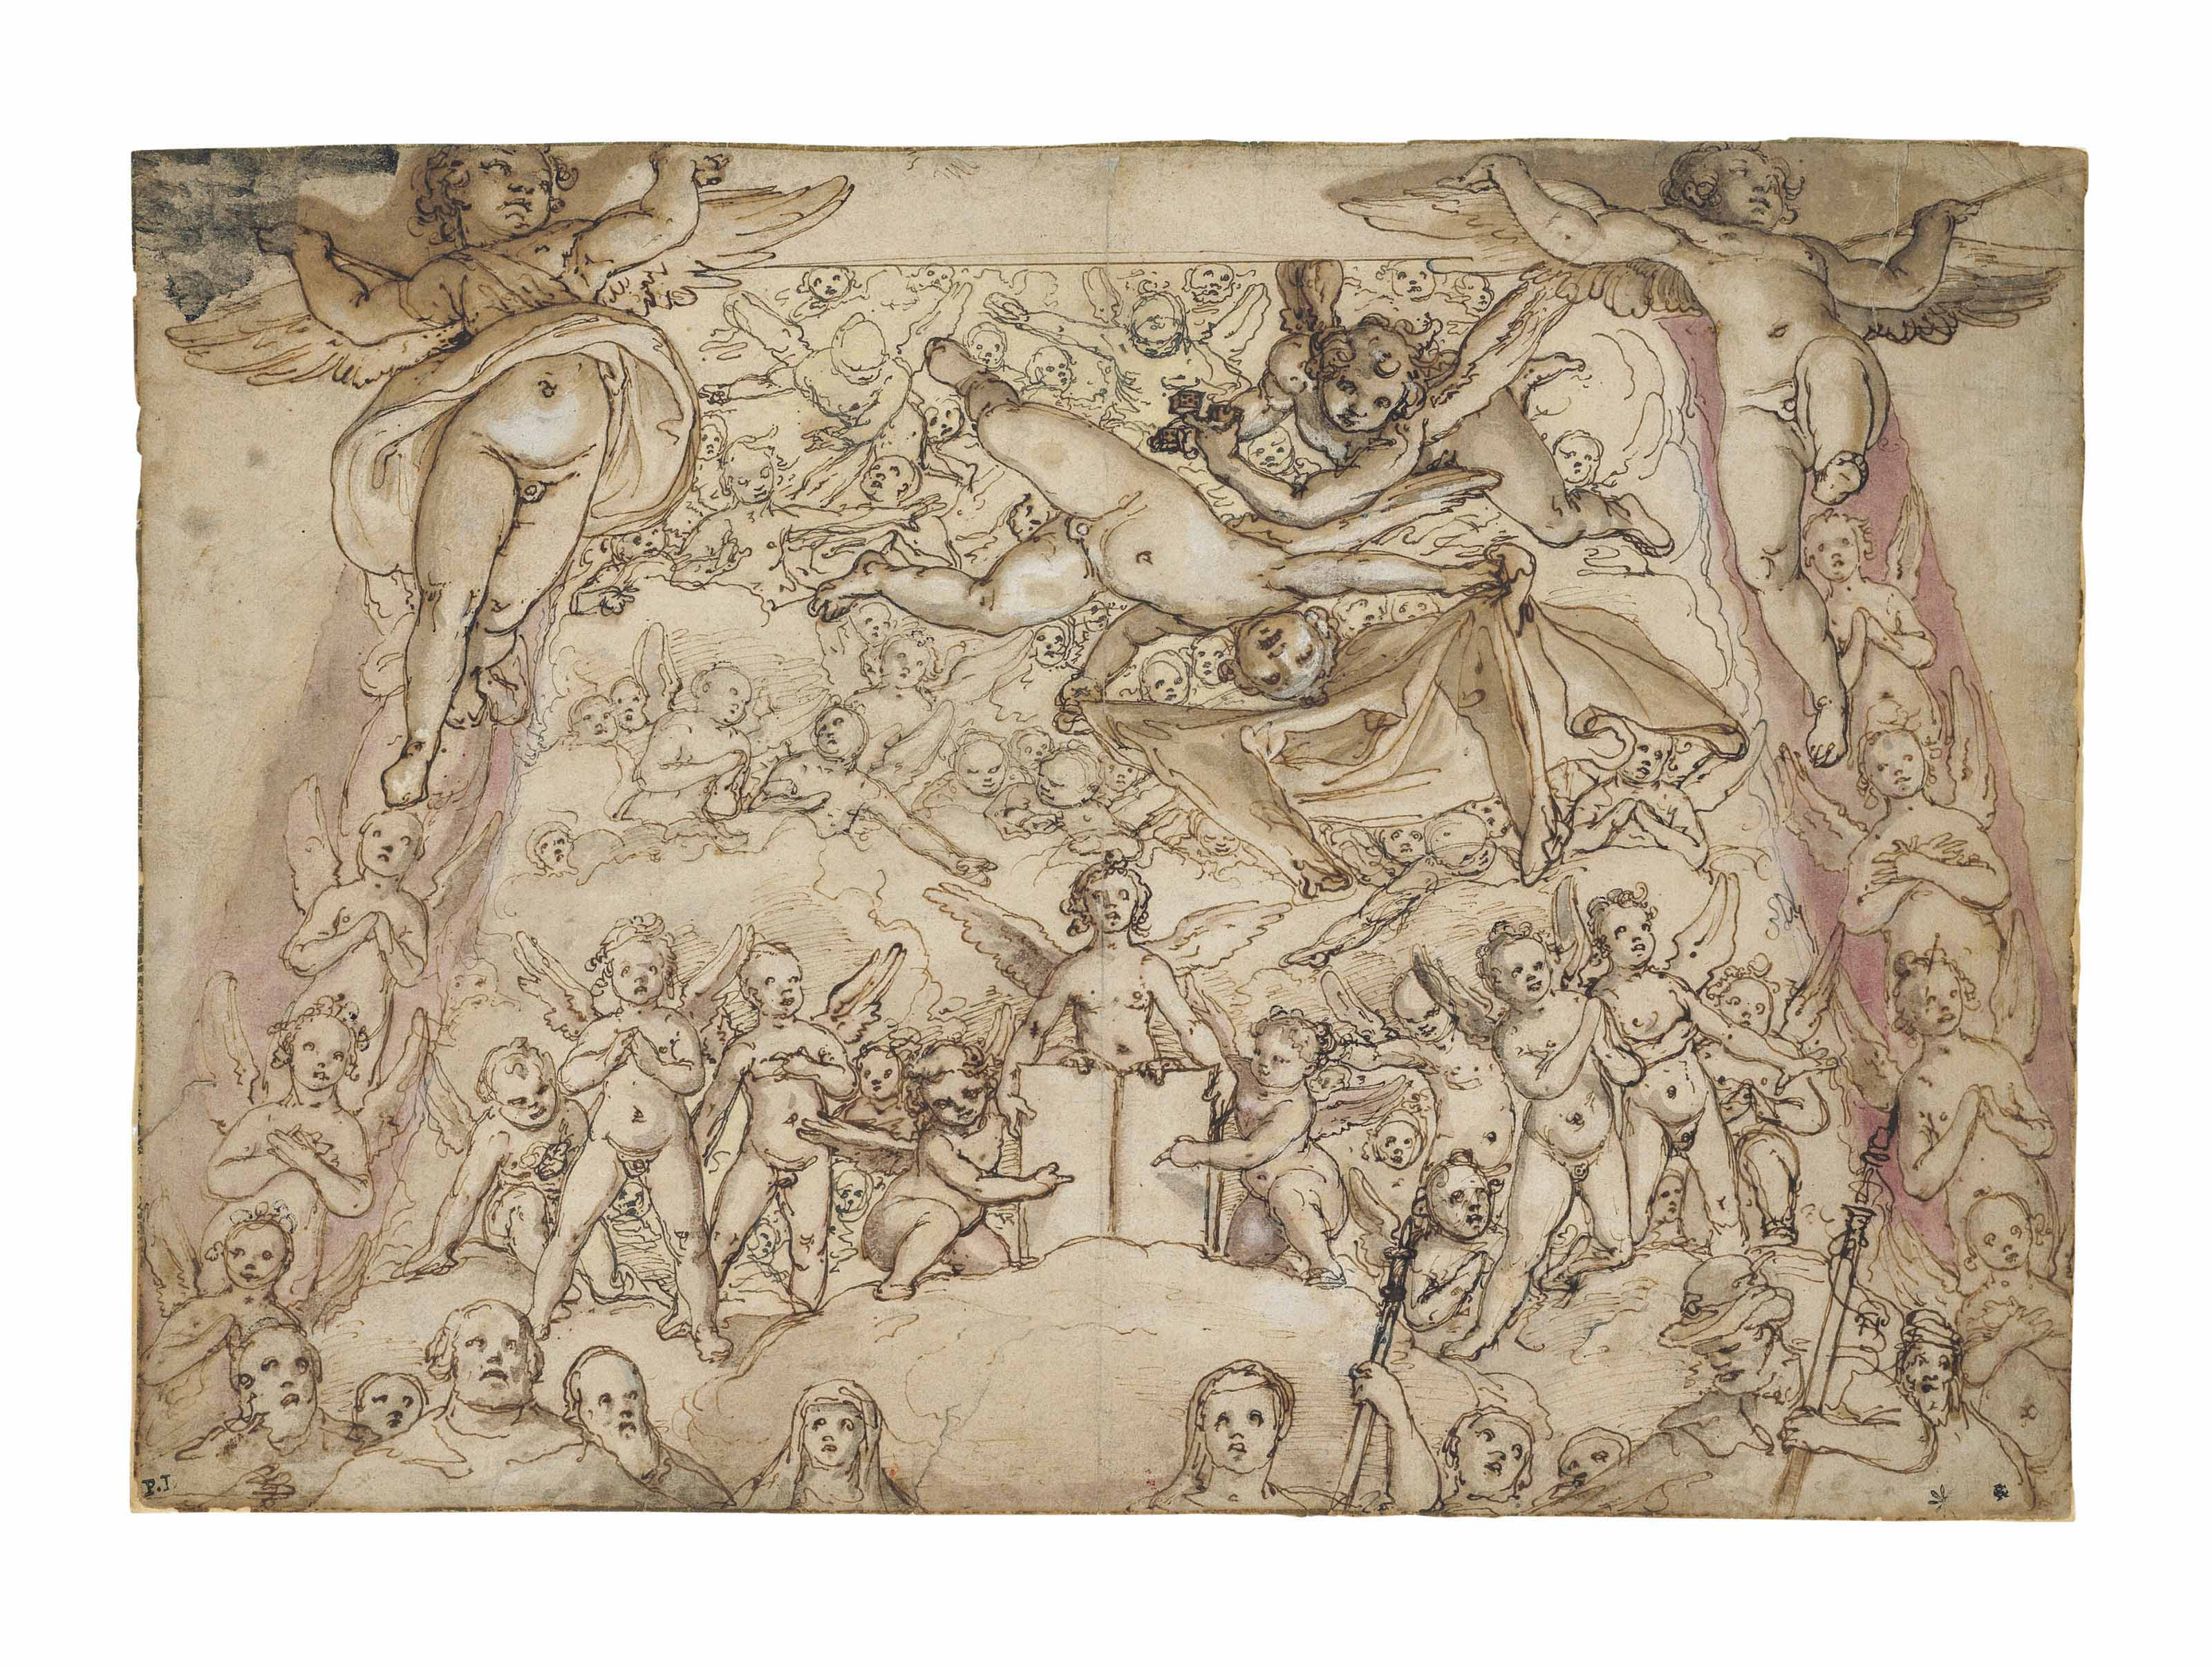 A flying Angel holding Christ's robe and another dice, accompanied by other Angels and figures